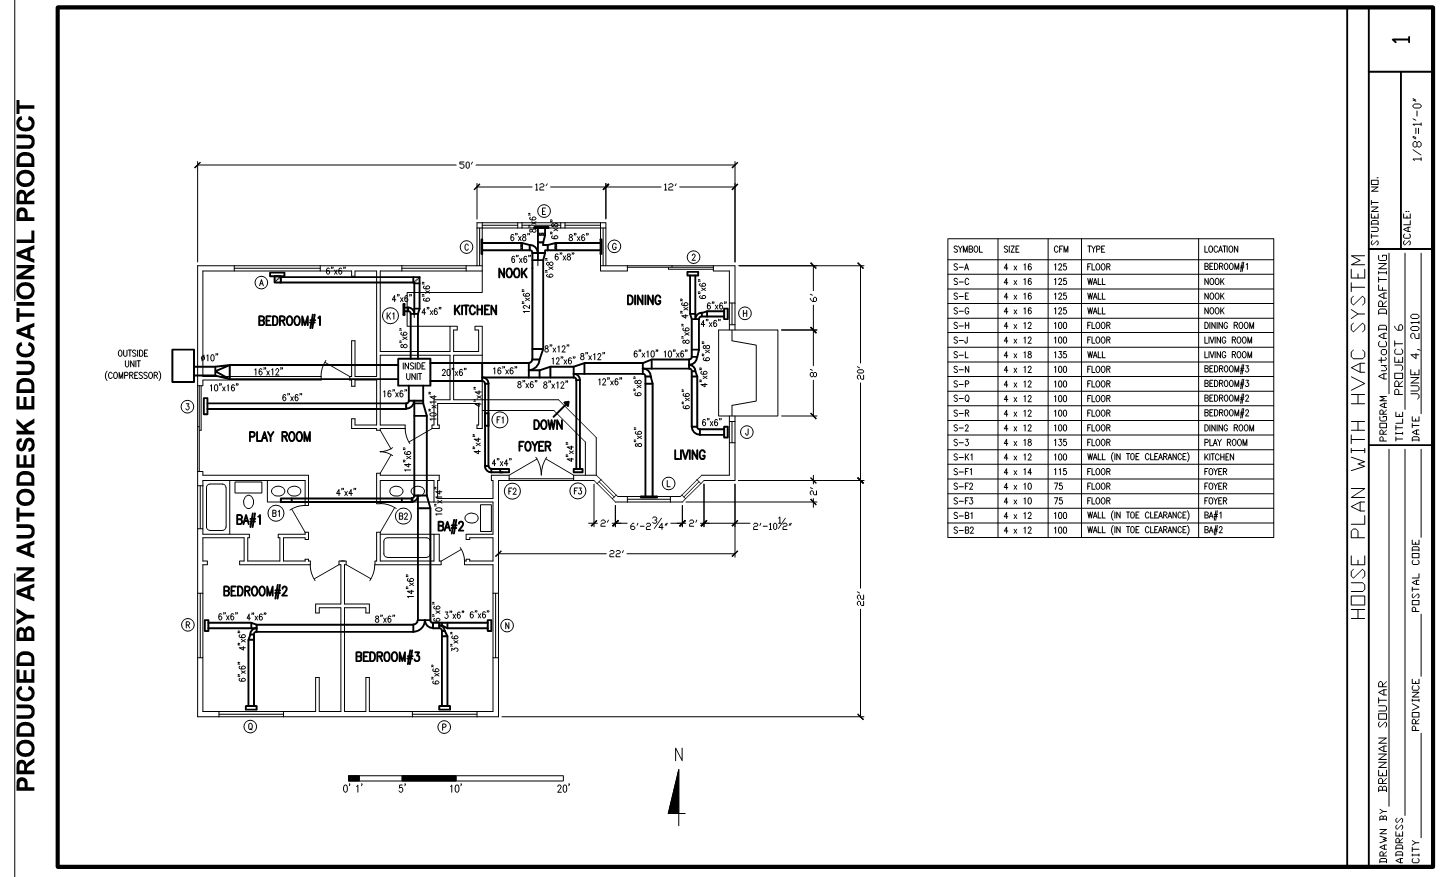 Hvac And Electrical Layouts Brennan Soutar Engineering Drafting Drawing For